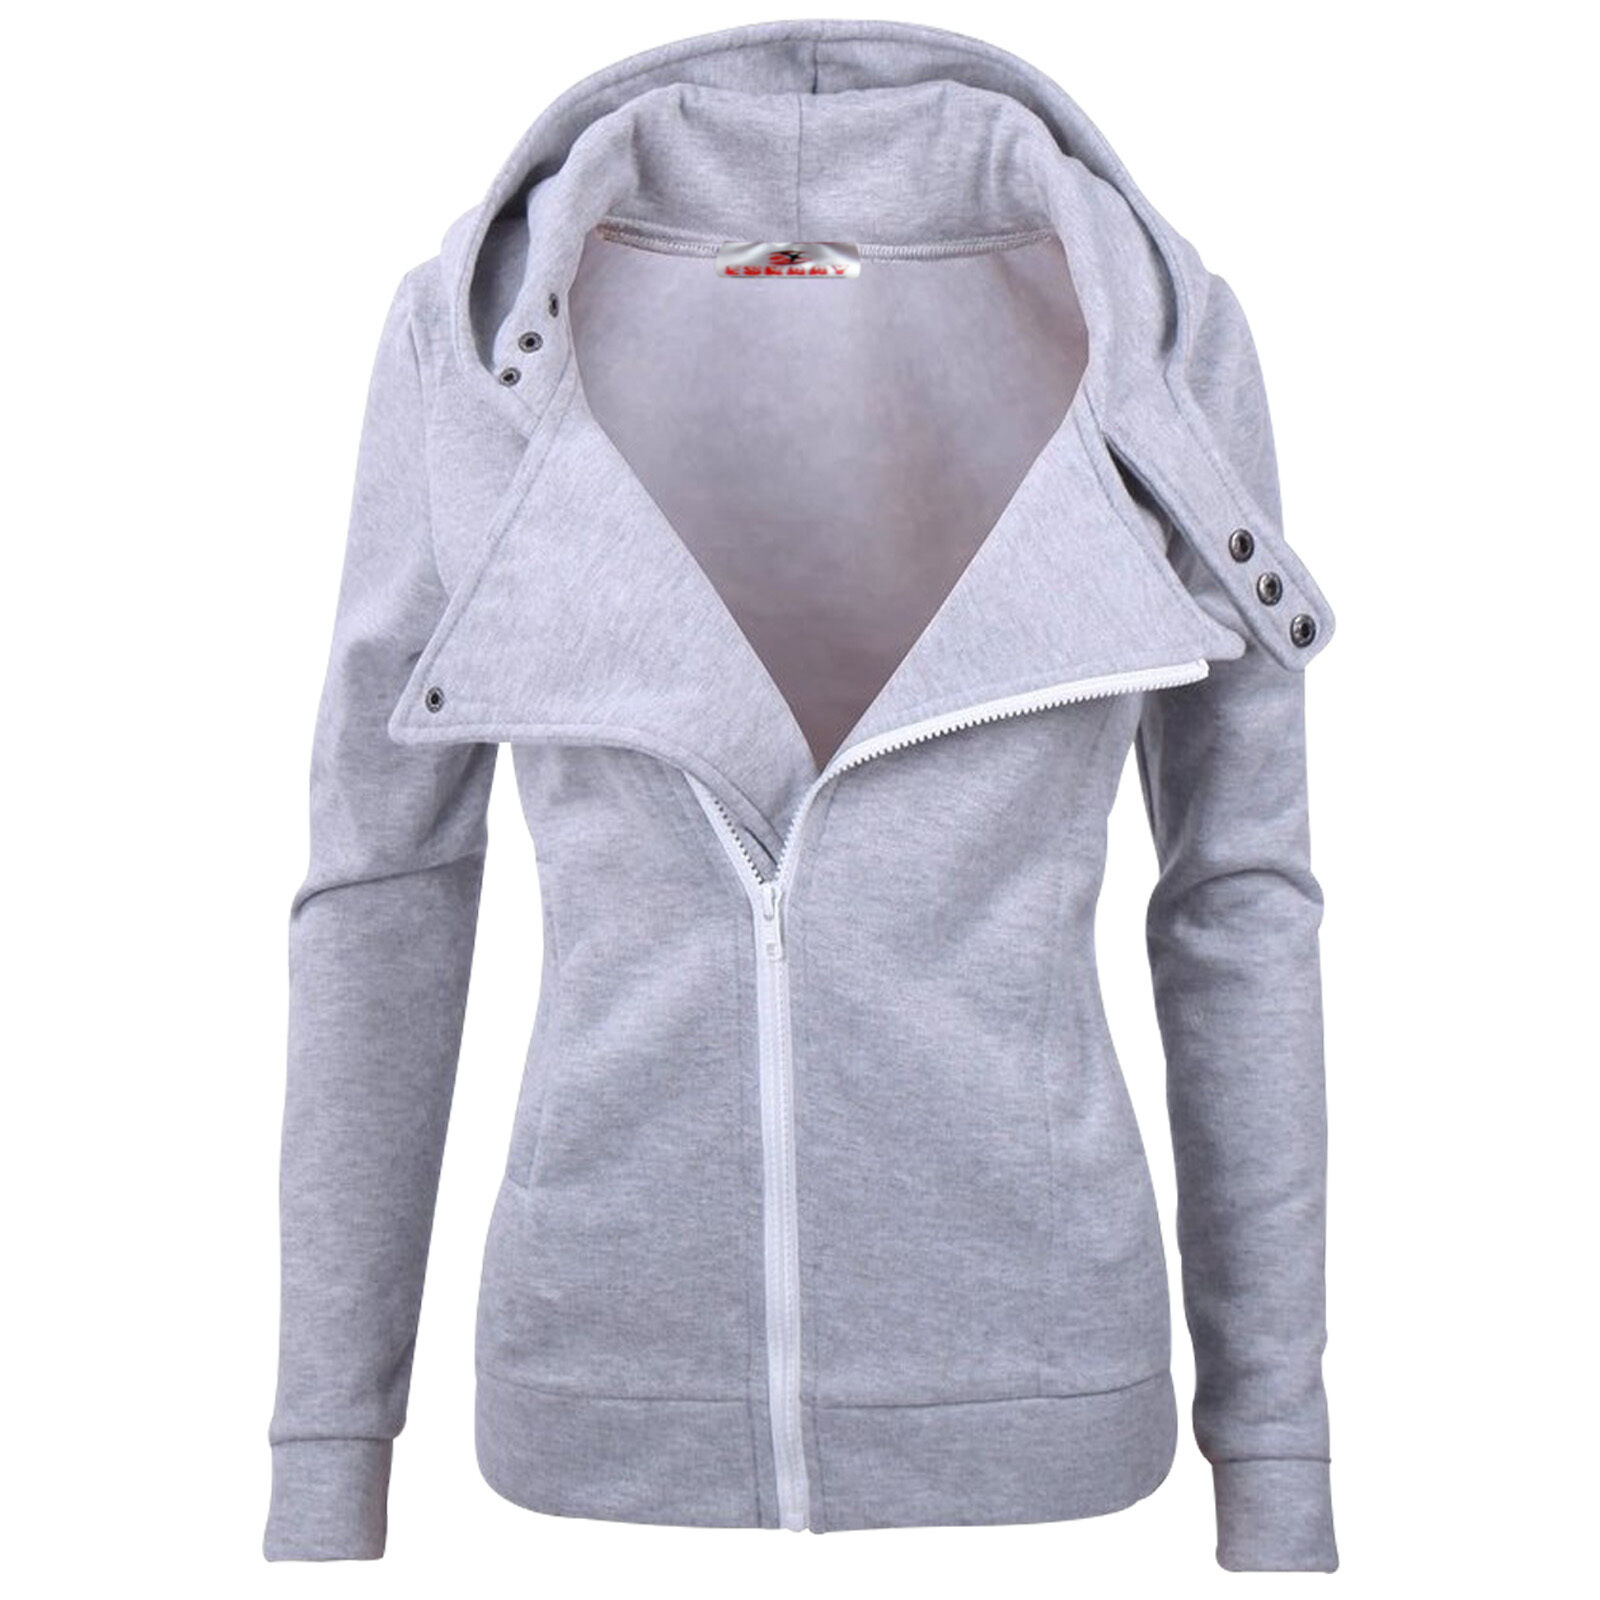 Long zip up hoodie